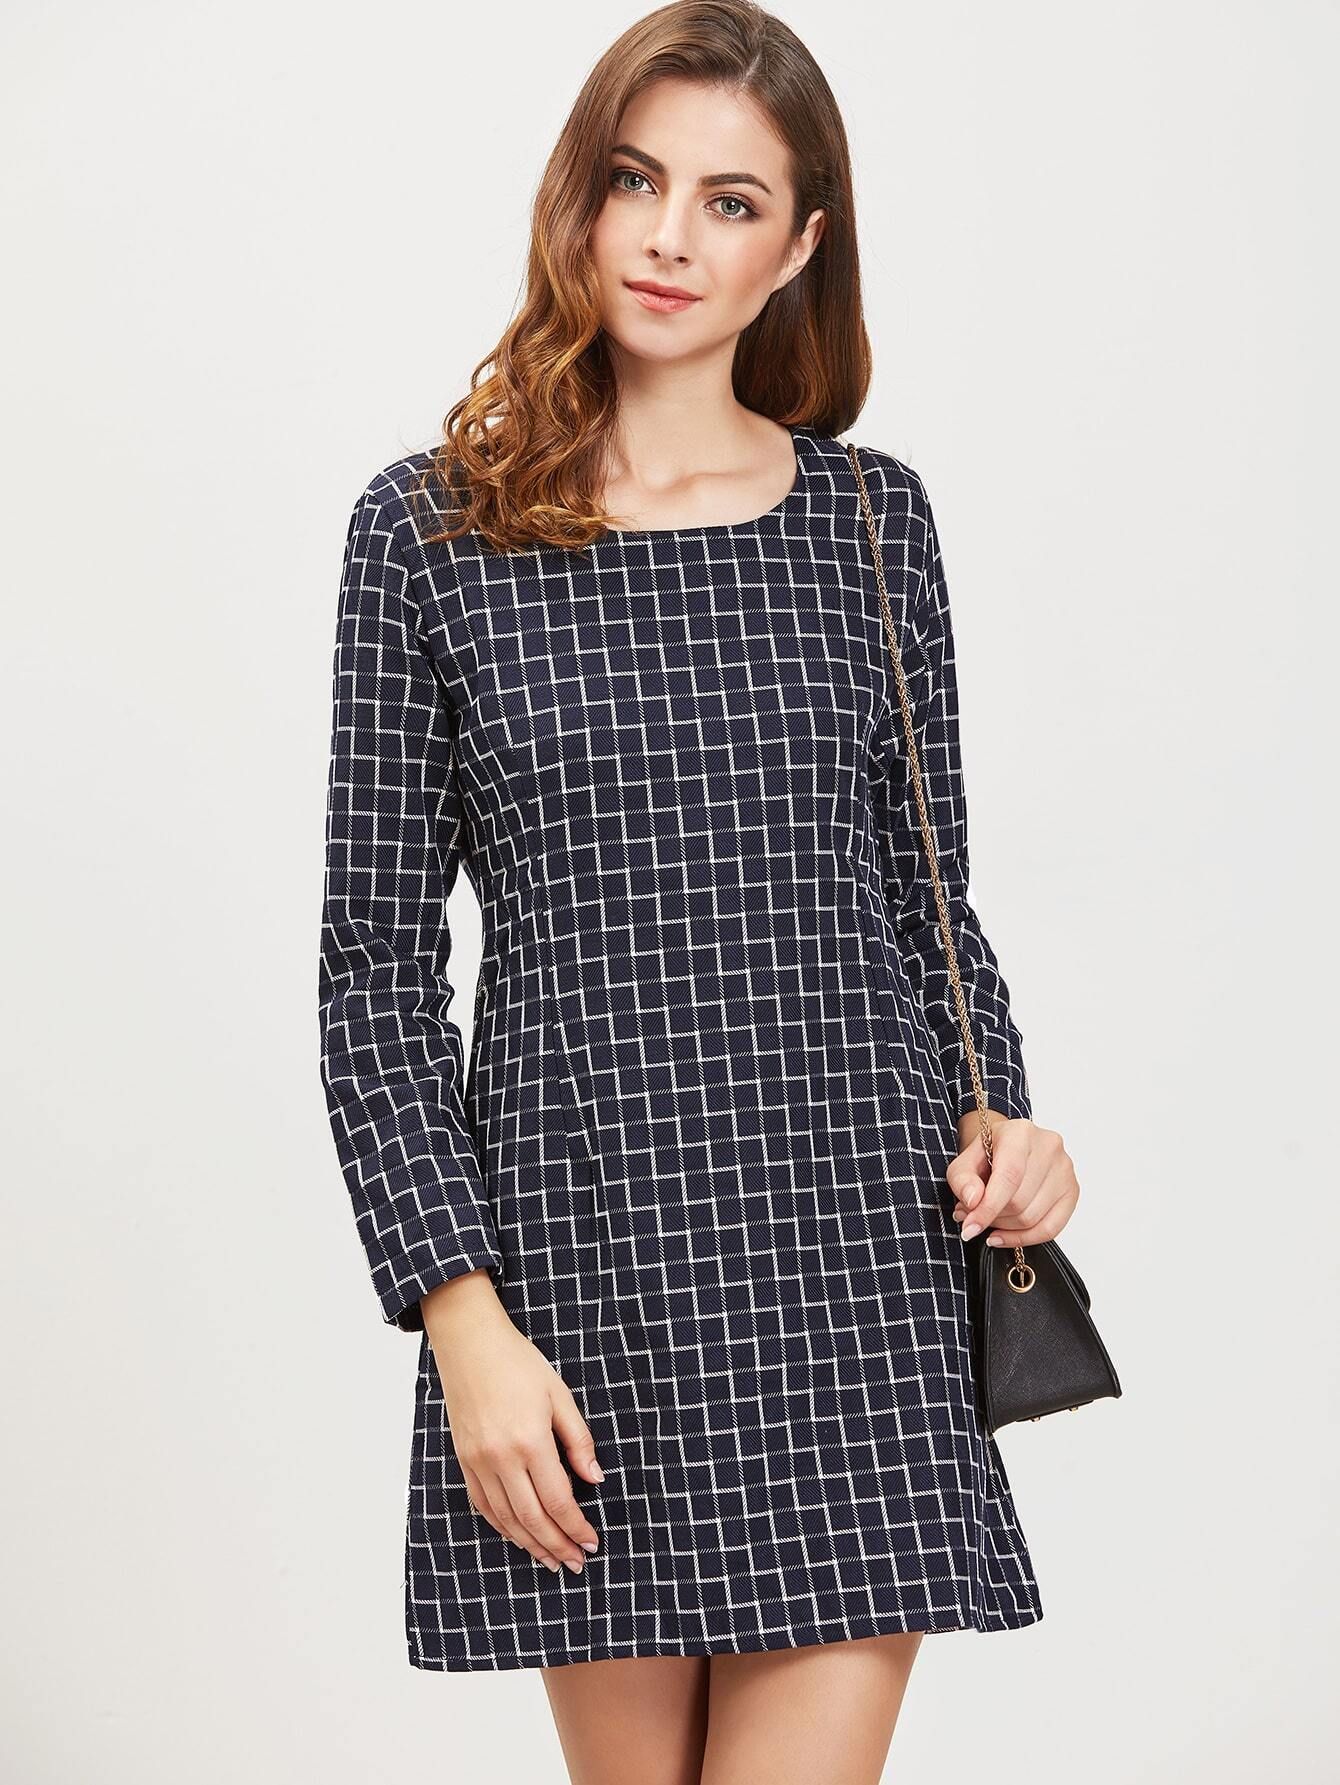 Navy Grid Zipper Back Long Sleeve DressNavy Grid Zipper Back Long Sleeve Dress<br><br>color: Navy<br>size: L,M,S,XL